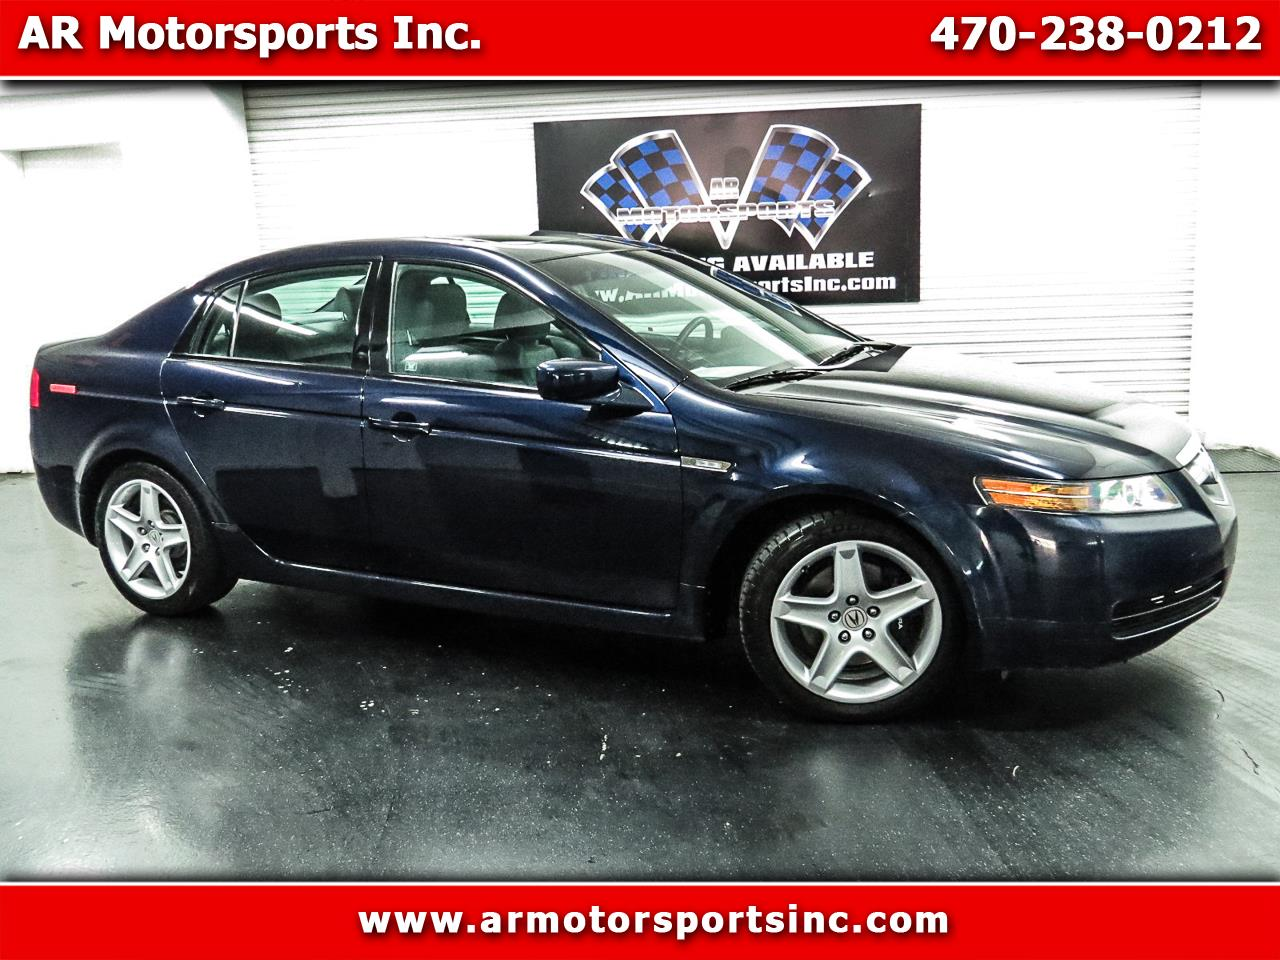 2005 Acura TL 6-Speed Mnual With Navigation